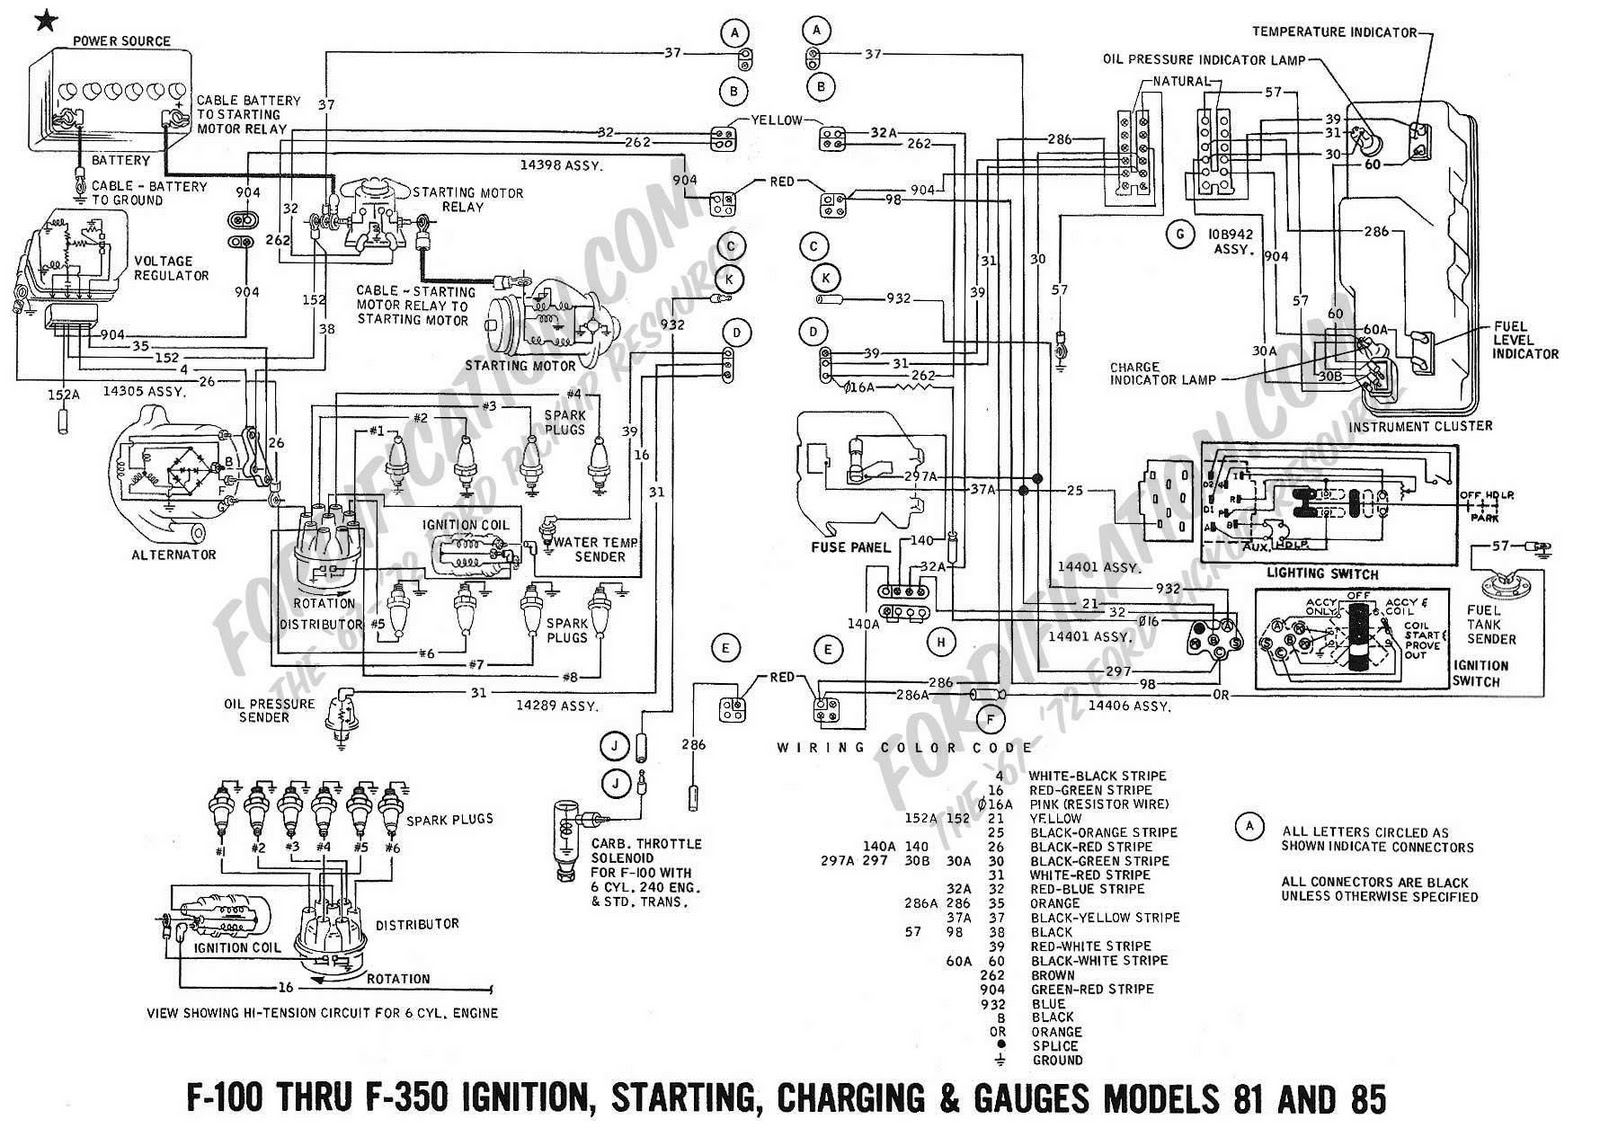 1984 Ford F 150 Voltage Regulator Wiring Diagram Simple Guide Old Car Cette Radio Wire About